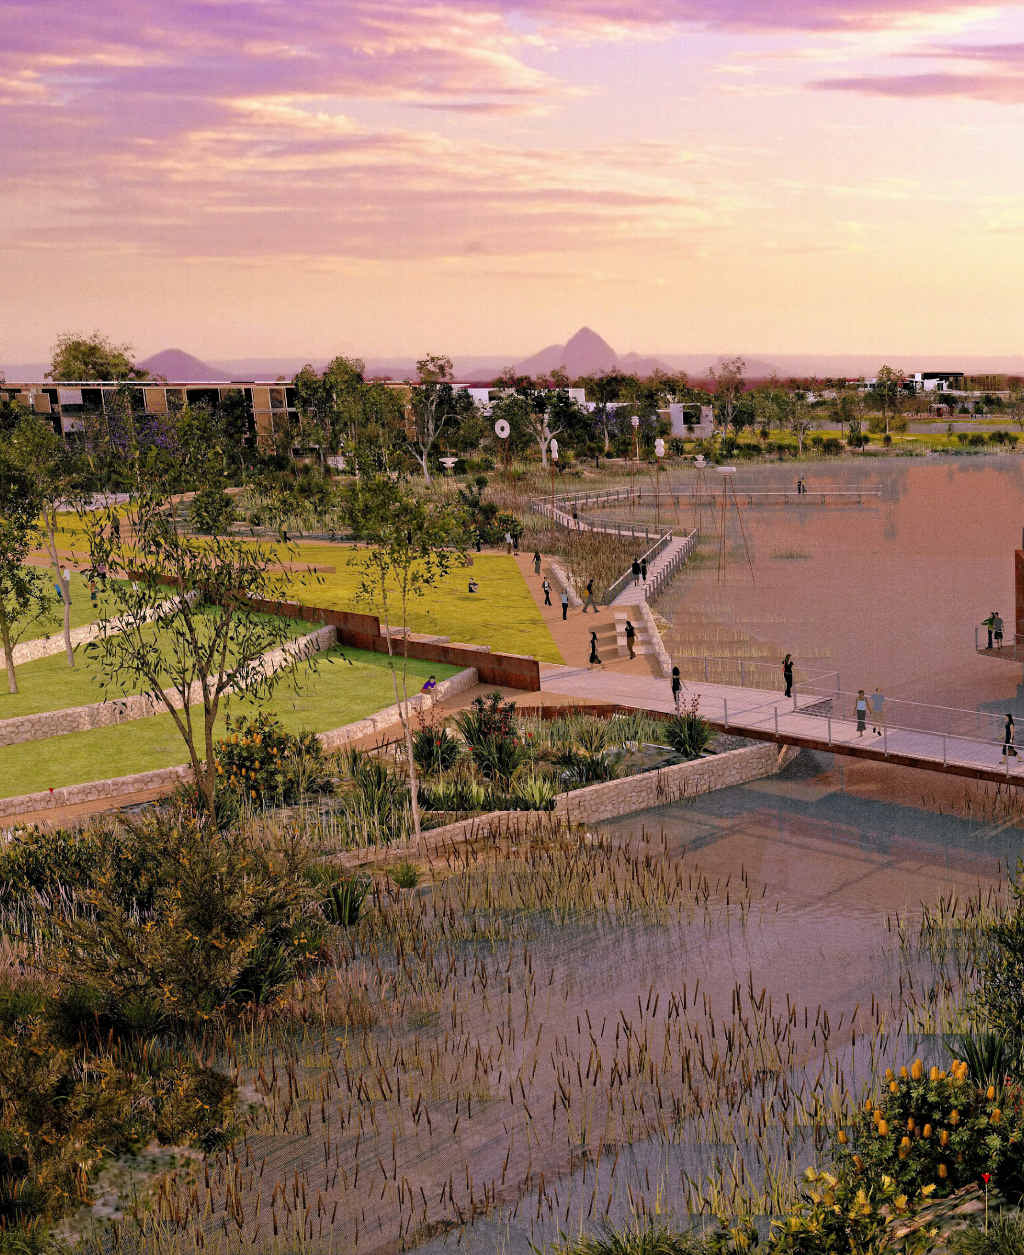 Caloundra South will become home to 50,000 people.